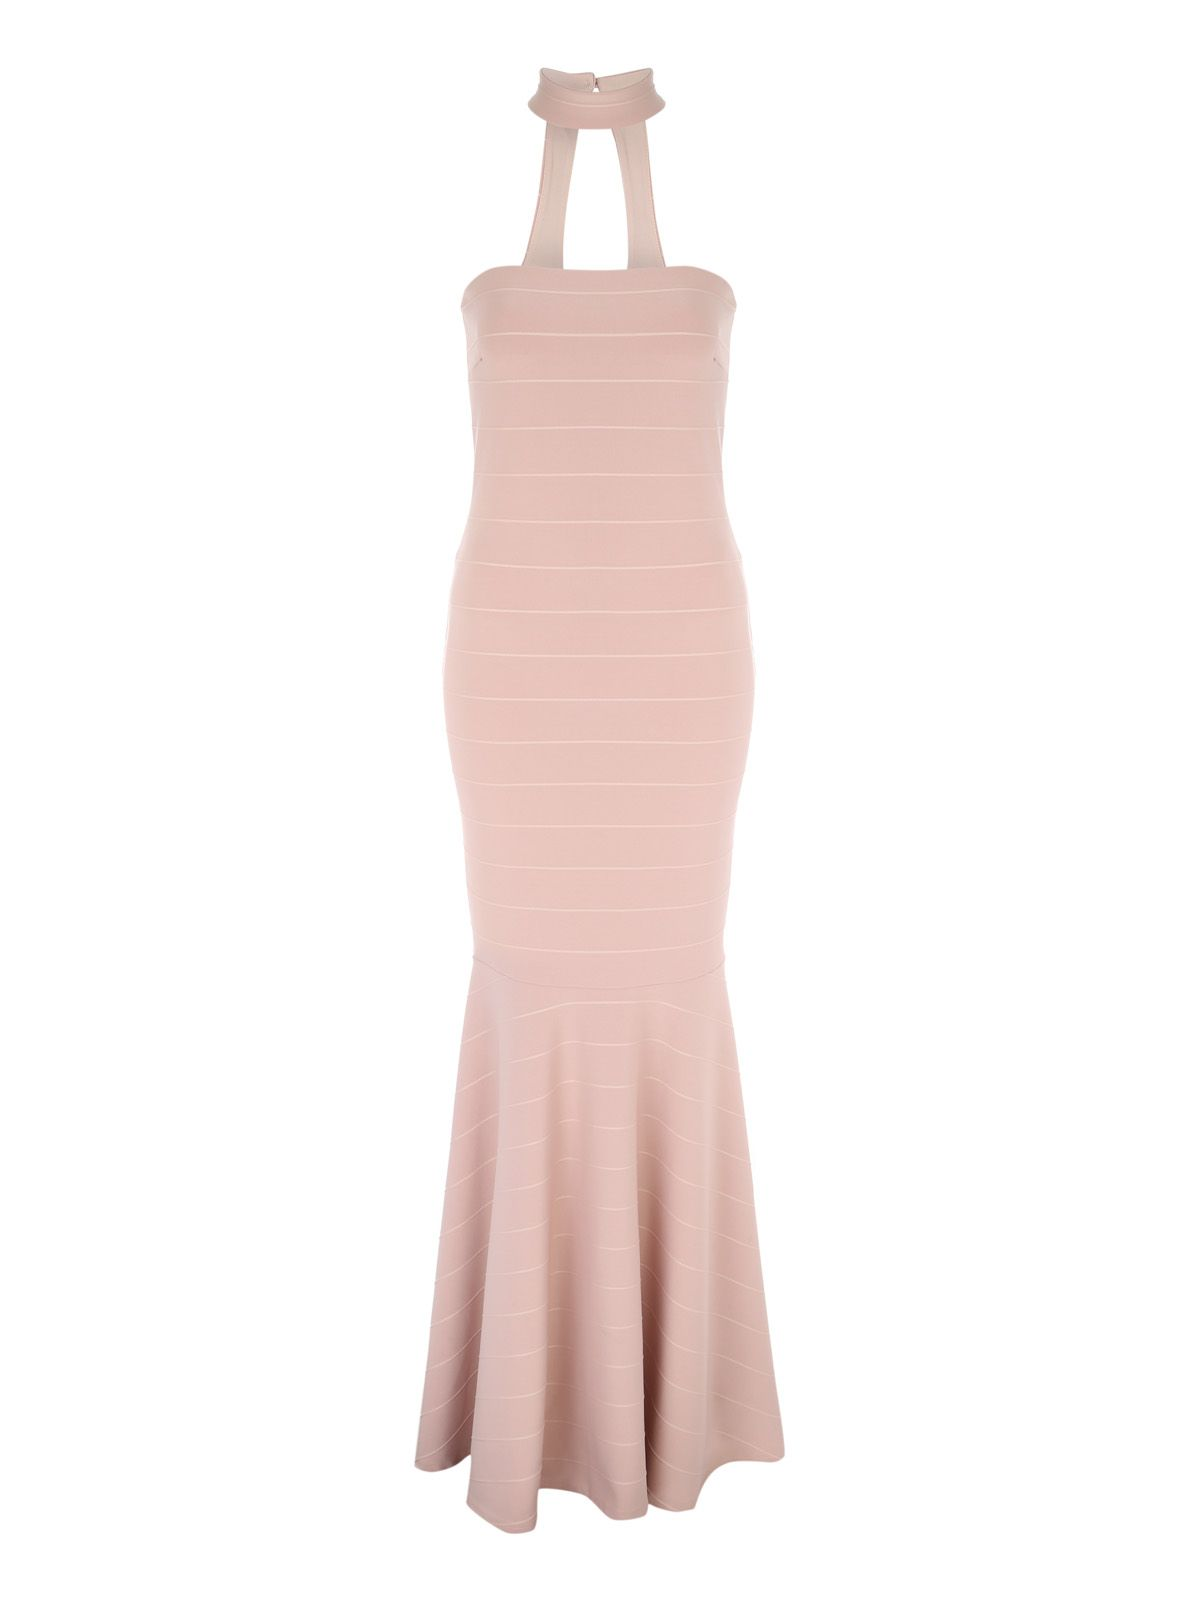 Jane Norman Maxi Bandage Dress, Nude